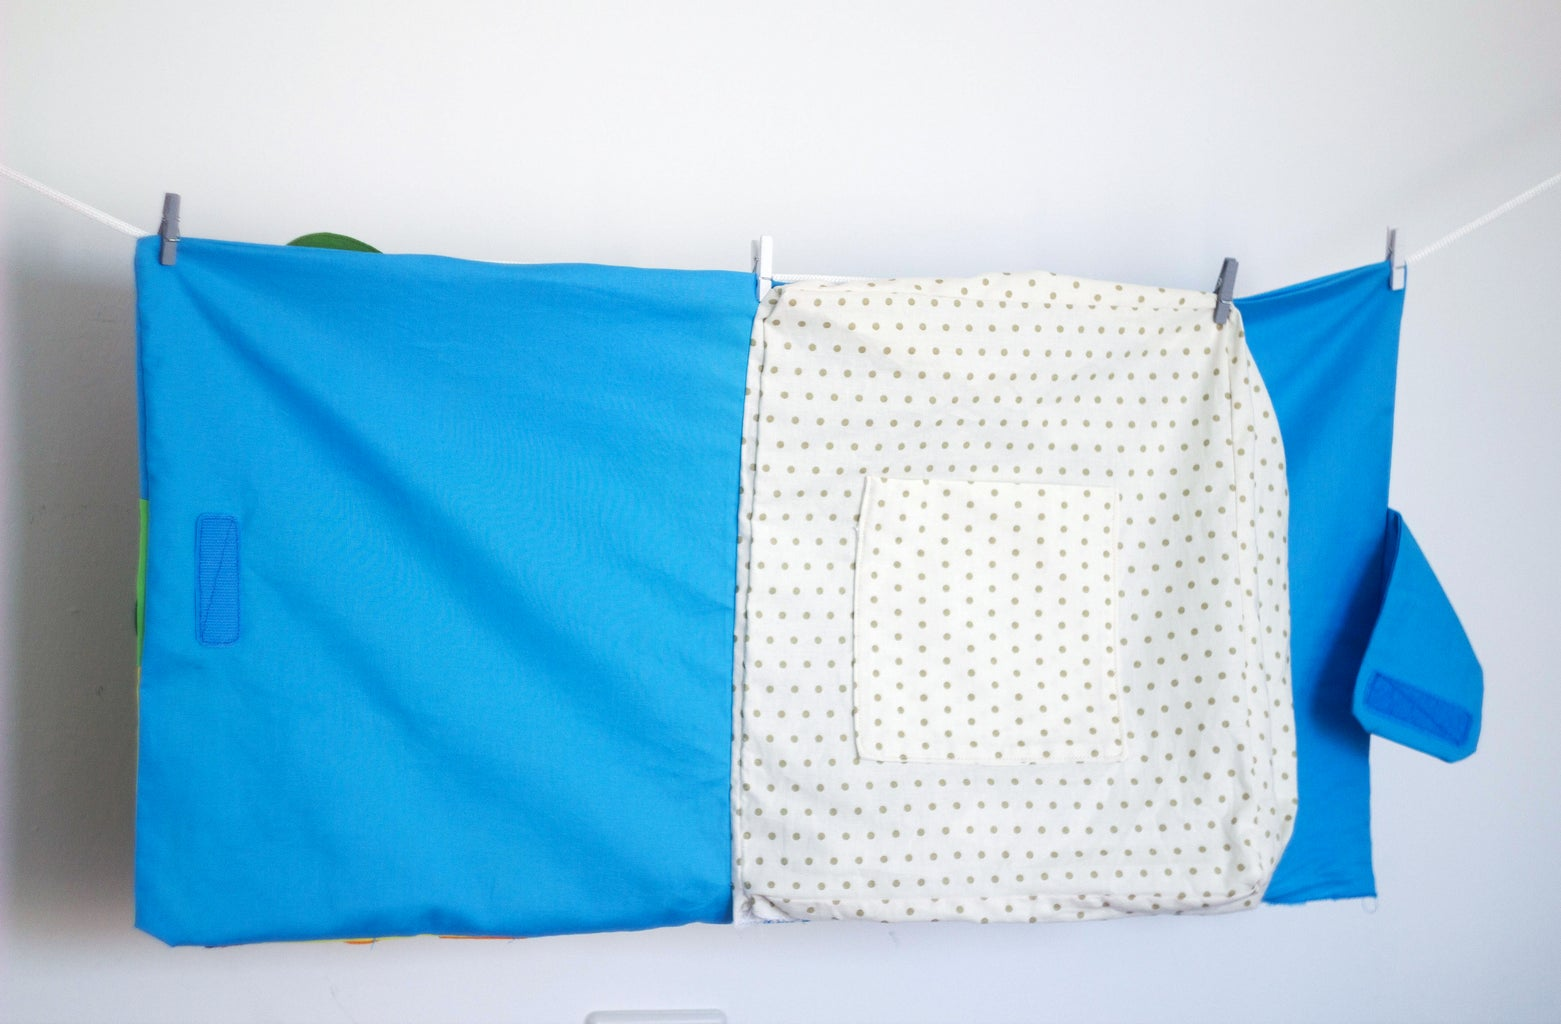 Assemble the Cover of the Pillow